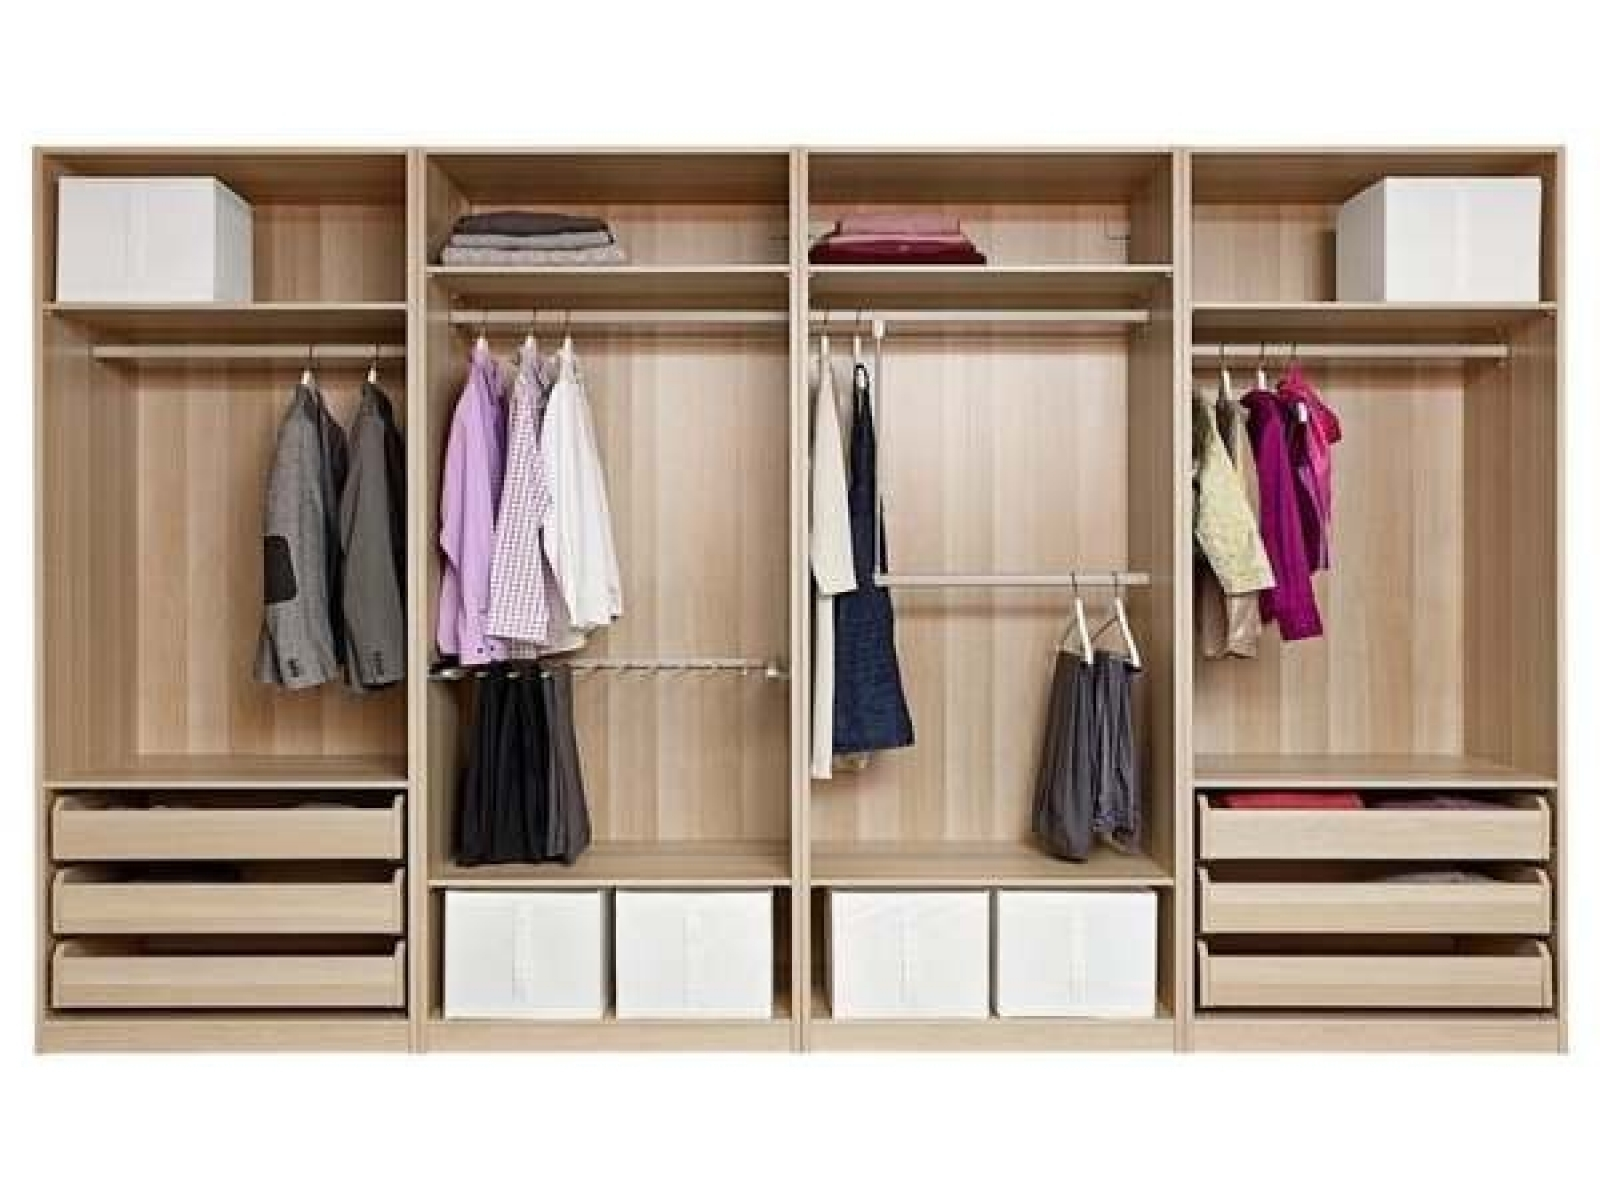 Modest Decoration Wardrobe Shelves And Drawers Mirrored With Inside Most Current Wardrobe With Shelves And Drawers (View 7 of 15)